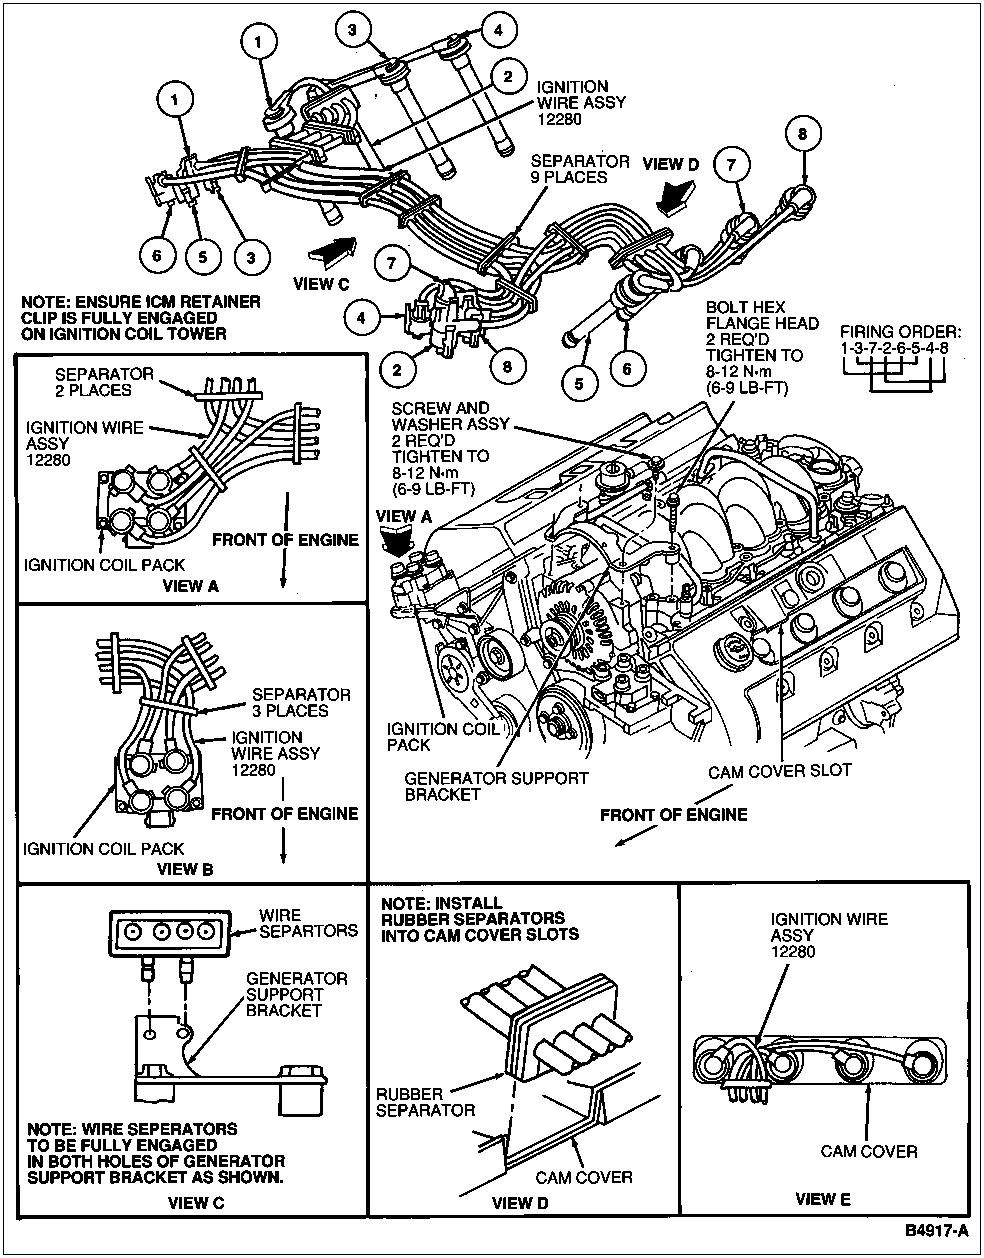 Chevy 350 Spark Plug Wiring Diagram also Showthread as well 99 1999 Ford F350 Super Duty Diesel Injector Driver Module furthermore Static cargurus   images site 2012 06 12 21 06 1993 dodge dakota 2 dr std 4wd extended cab sb Pic 1854903338151081702 further 96 Ford Ranger Spark Plug Wiring Diagram. on coil pack chevy 5 3 plug diagram